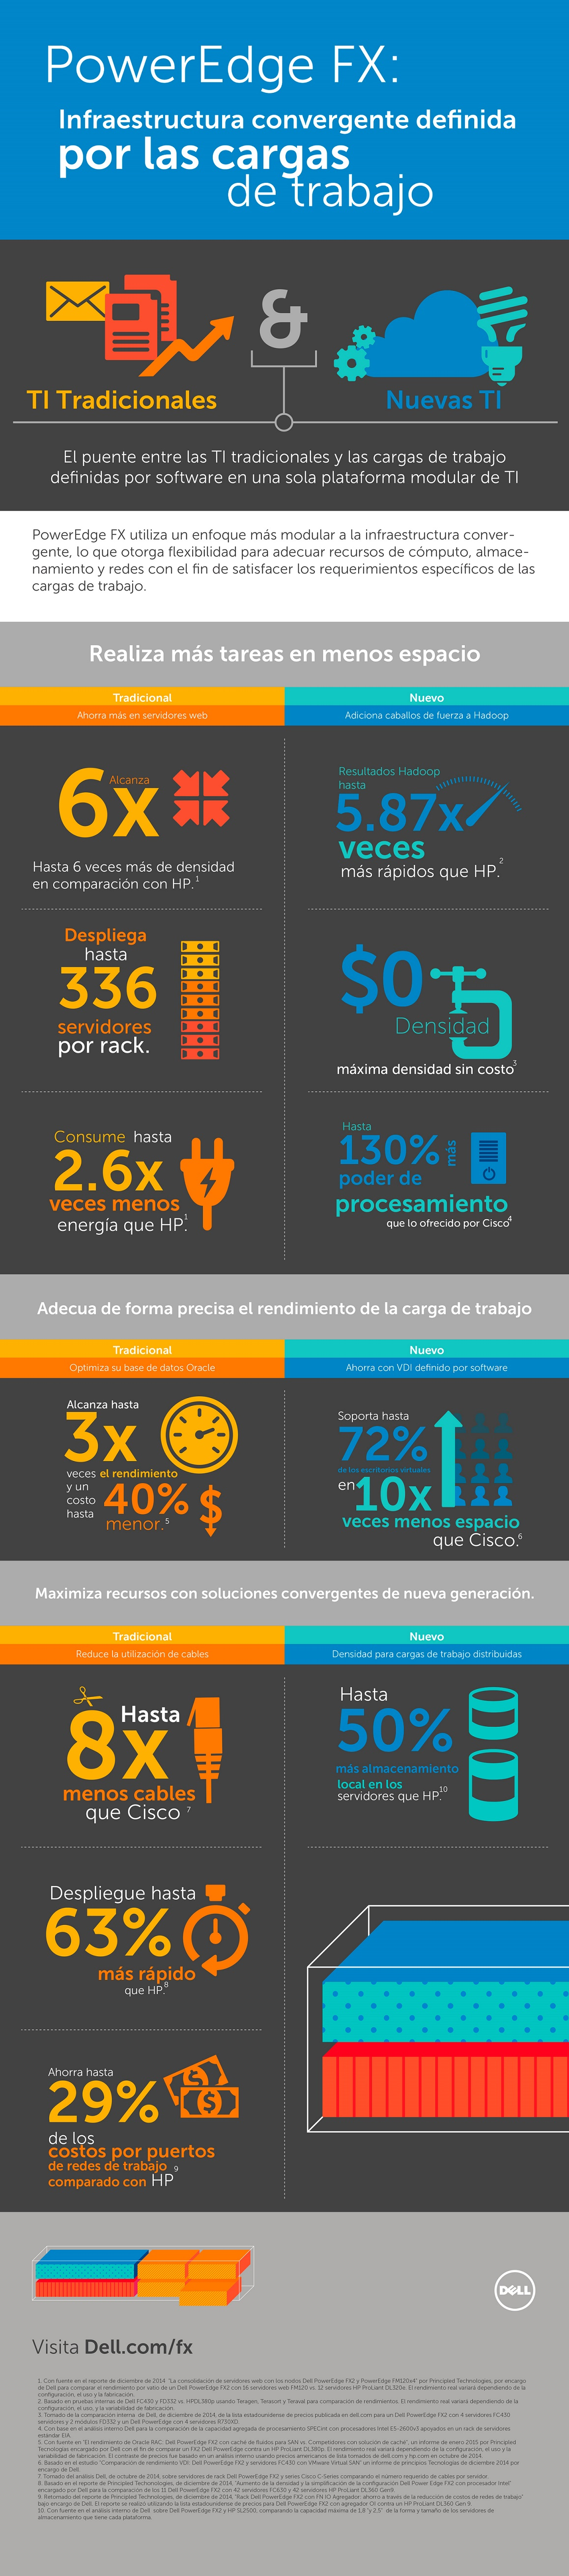 Dell PowerEdge FX_Infografia_